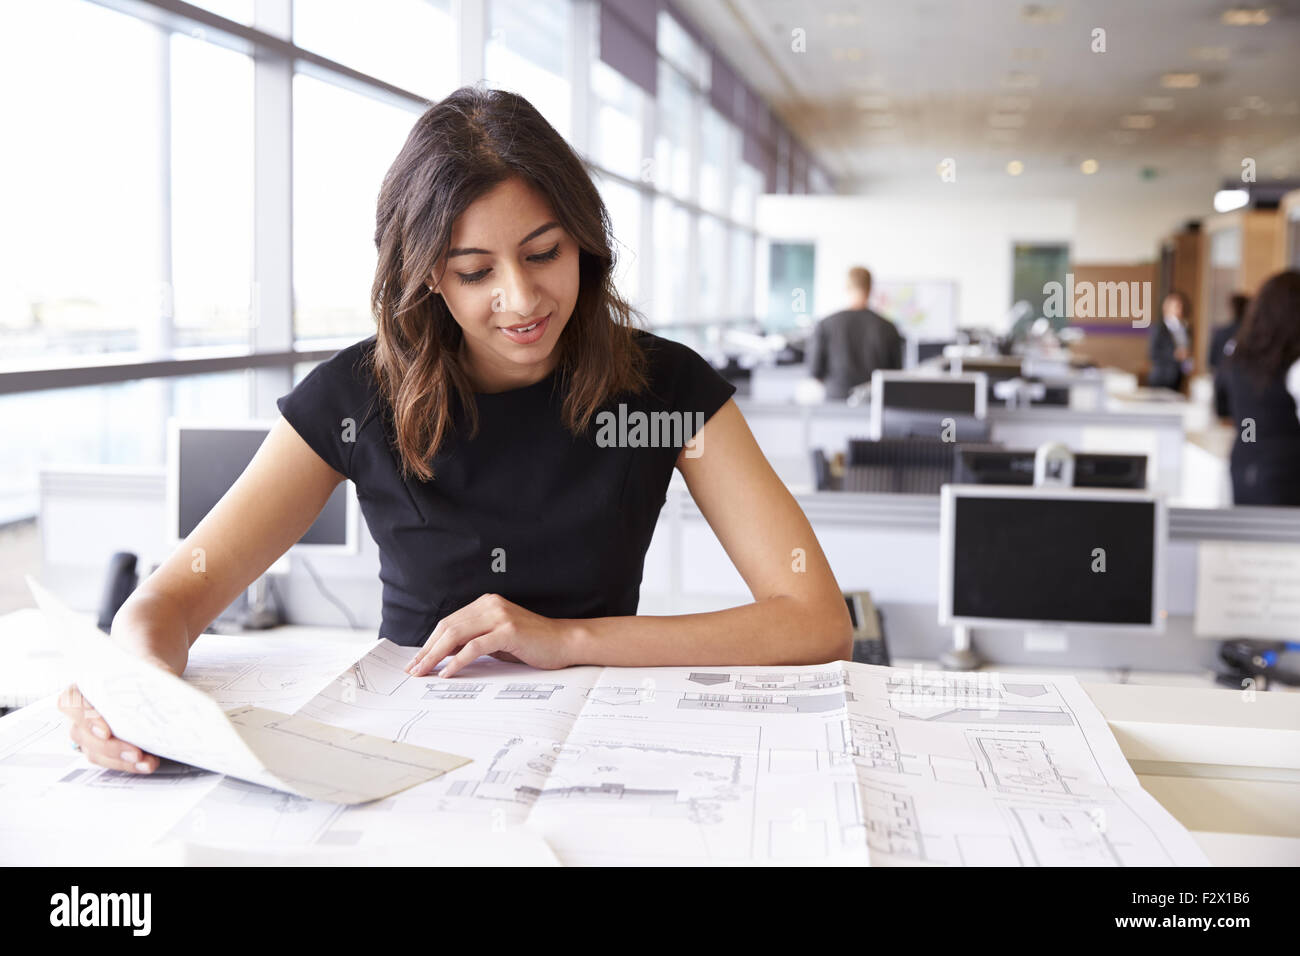 Young female architect working with blueprints in an office - Stock Image